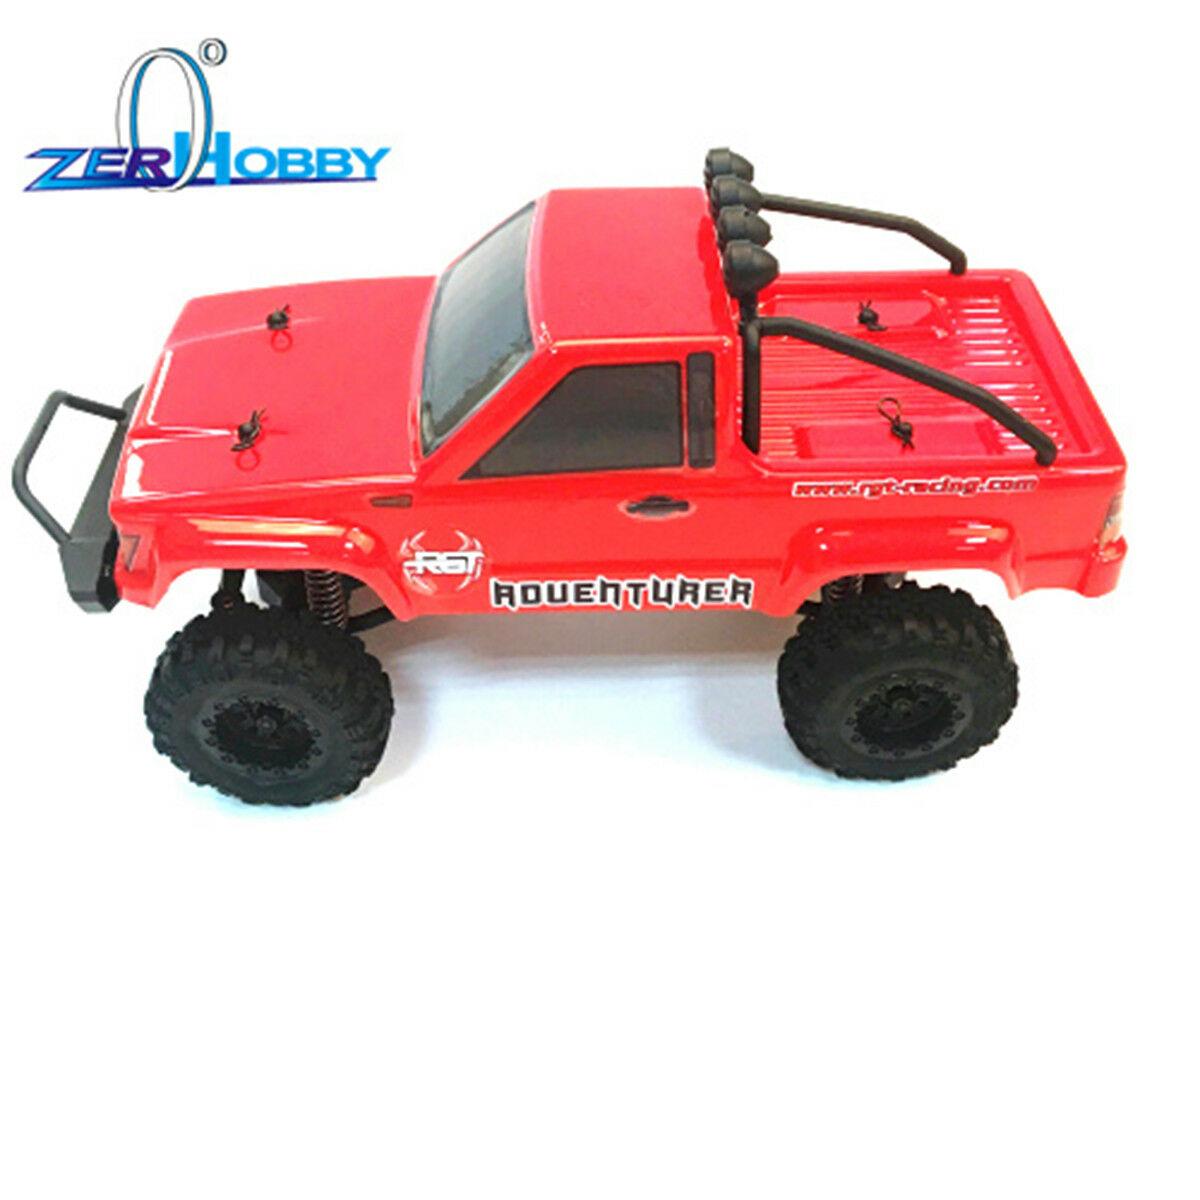 Rgt Hsp 136240 Rc Crawlers 1 24 Scale 4wd Off Road Monster